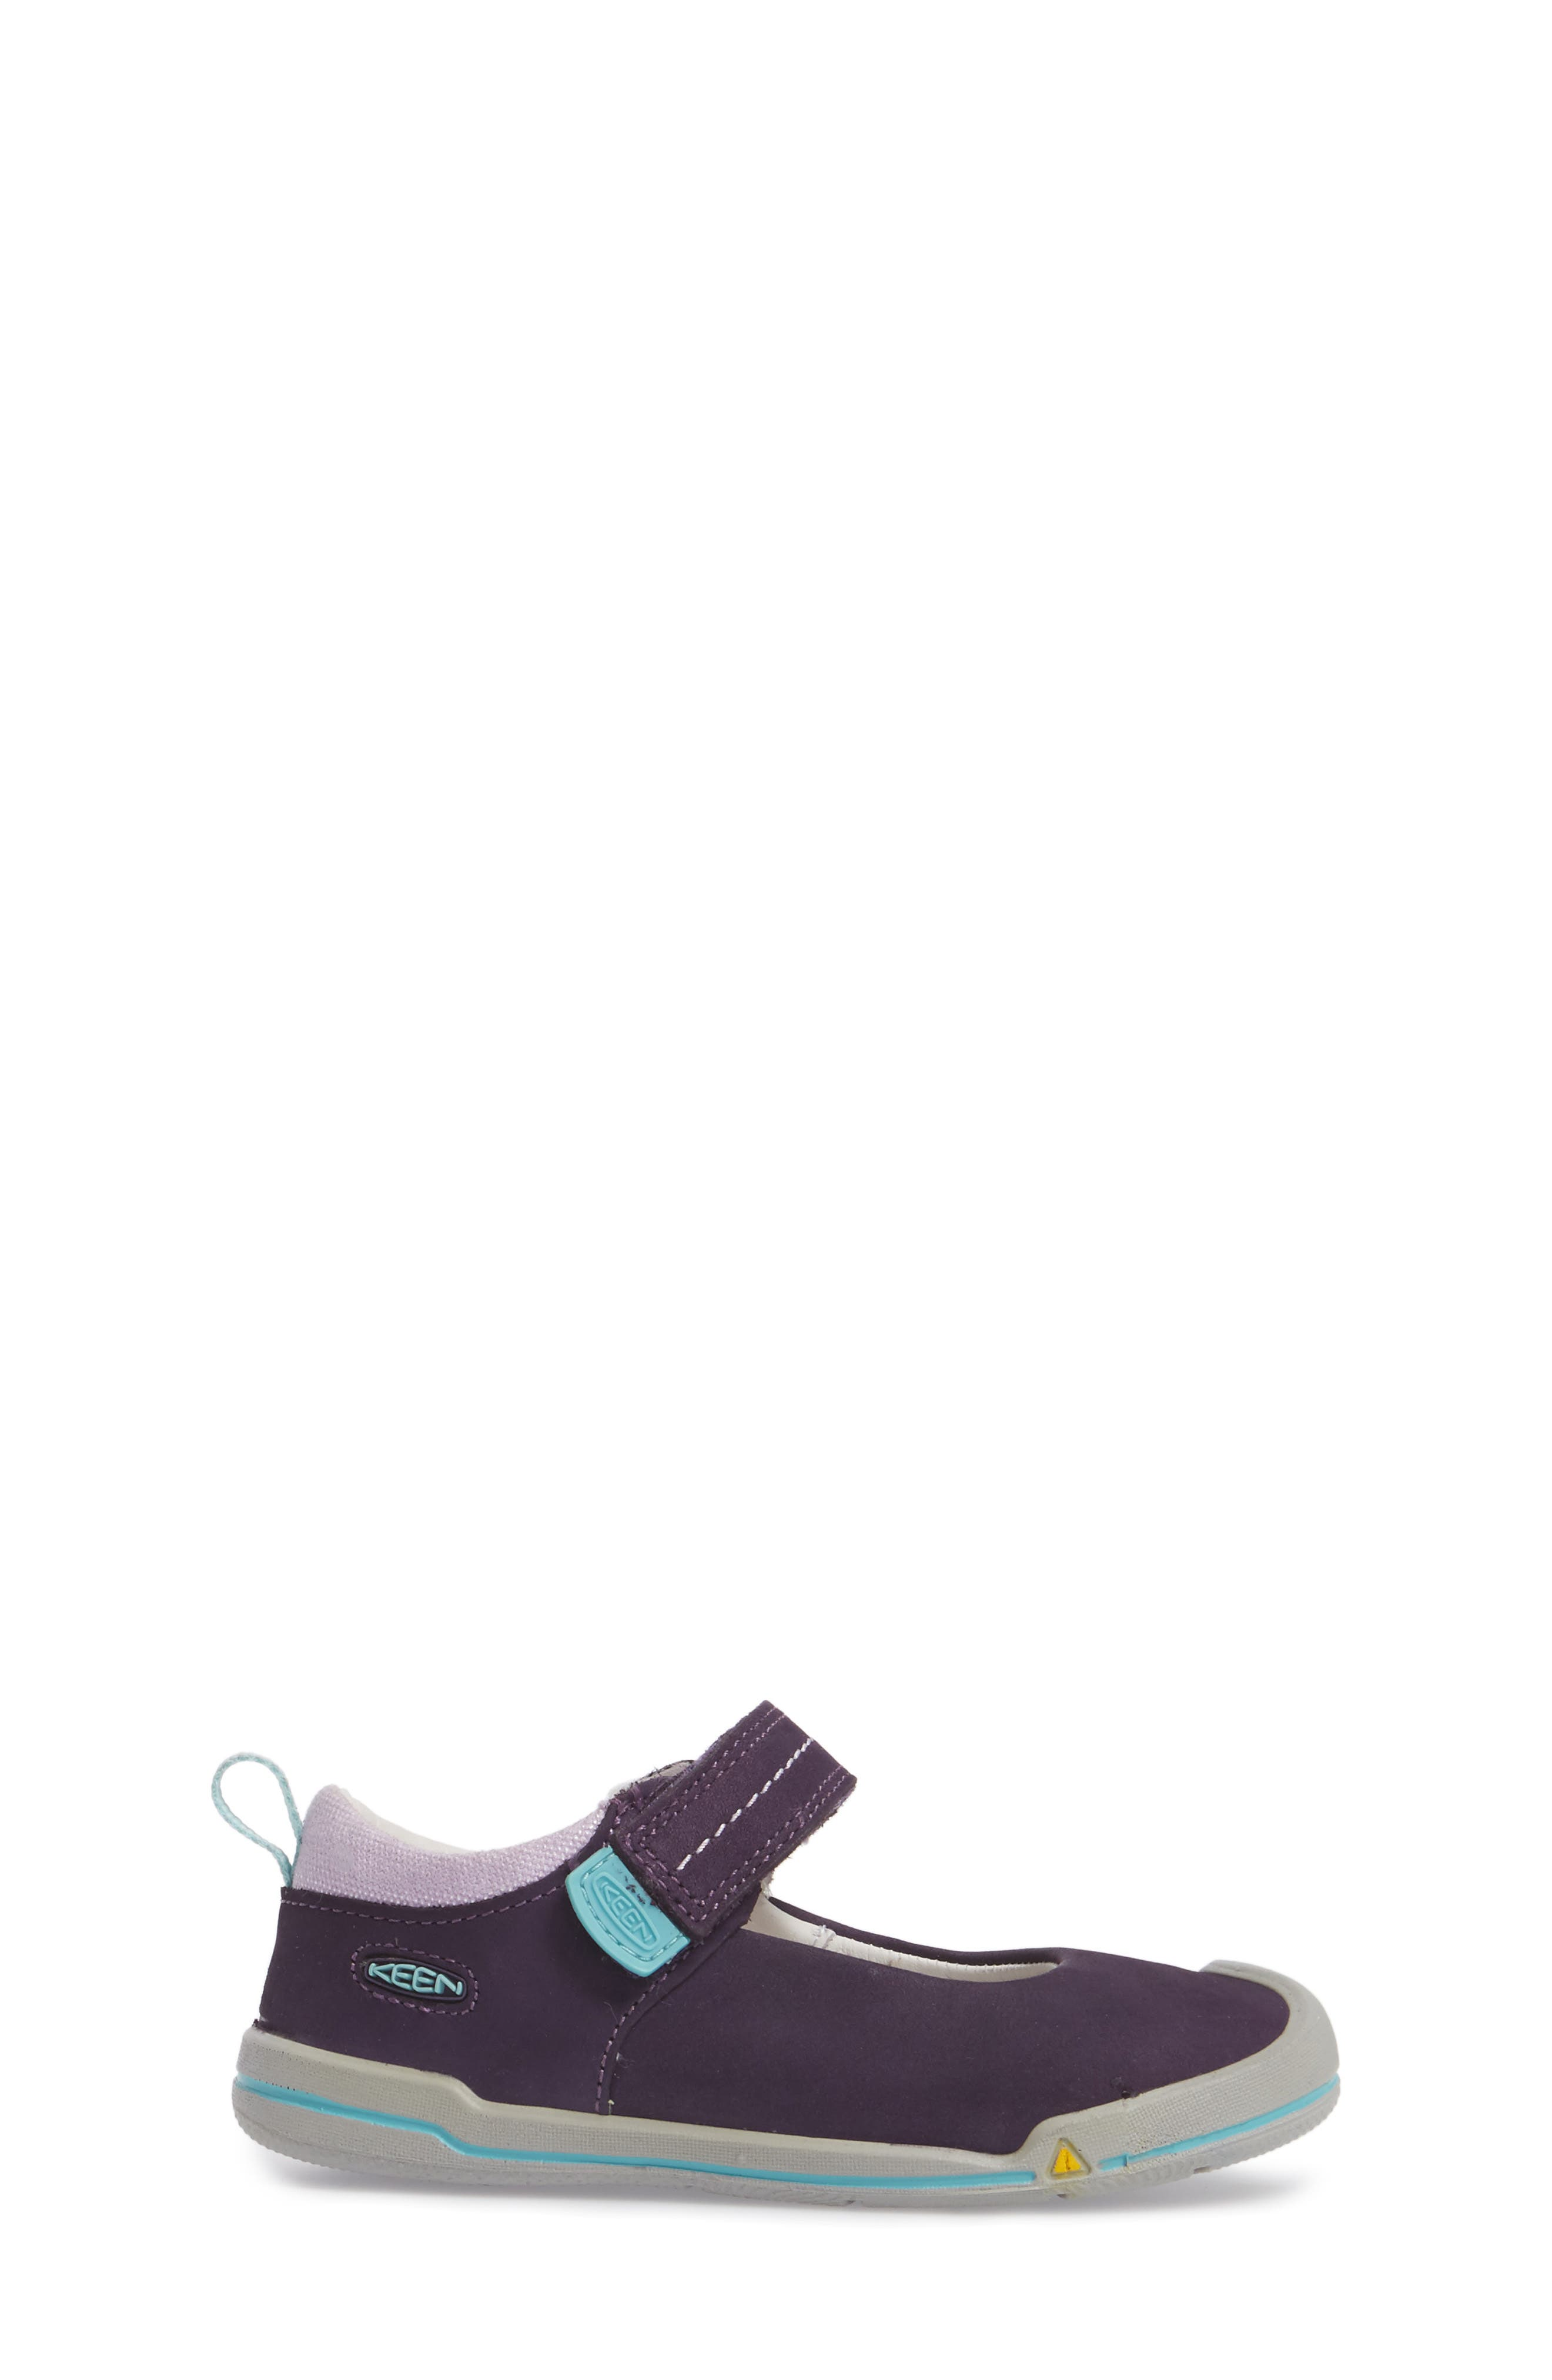 Sprout Mary Jane Sneaker,                             Alternate thumbnail 6, color,